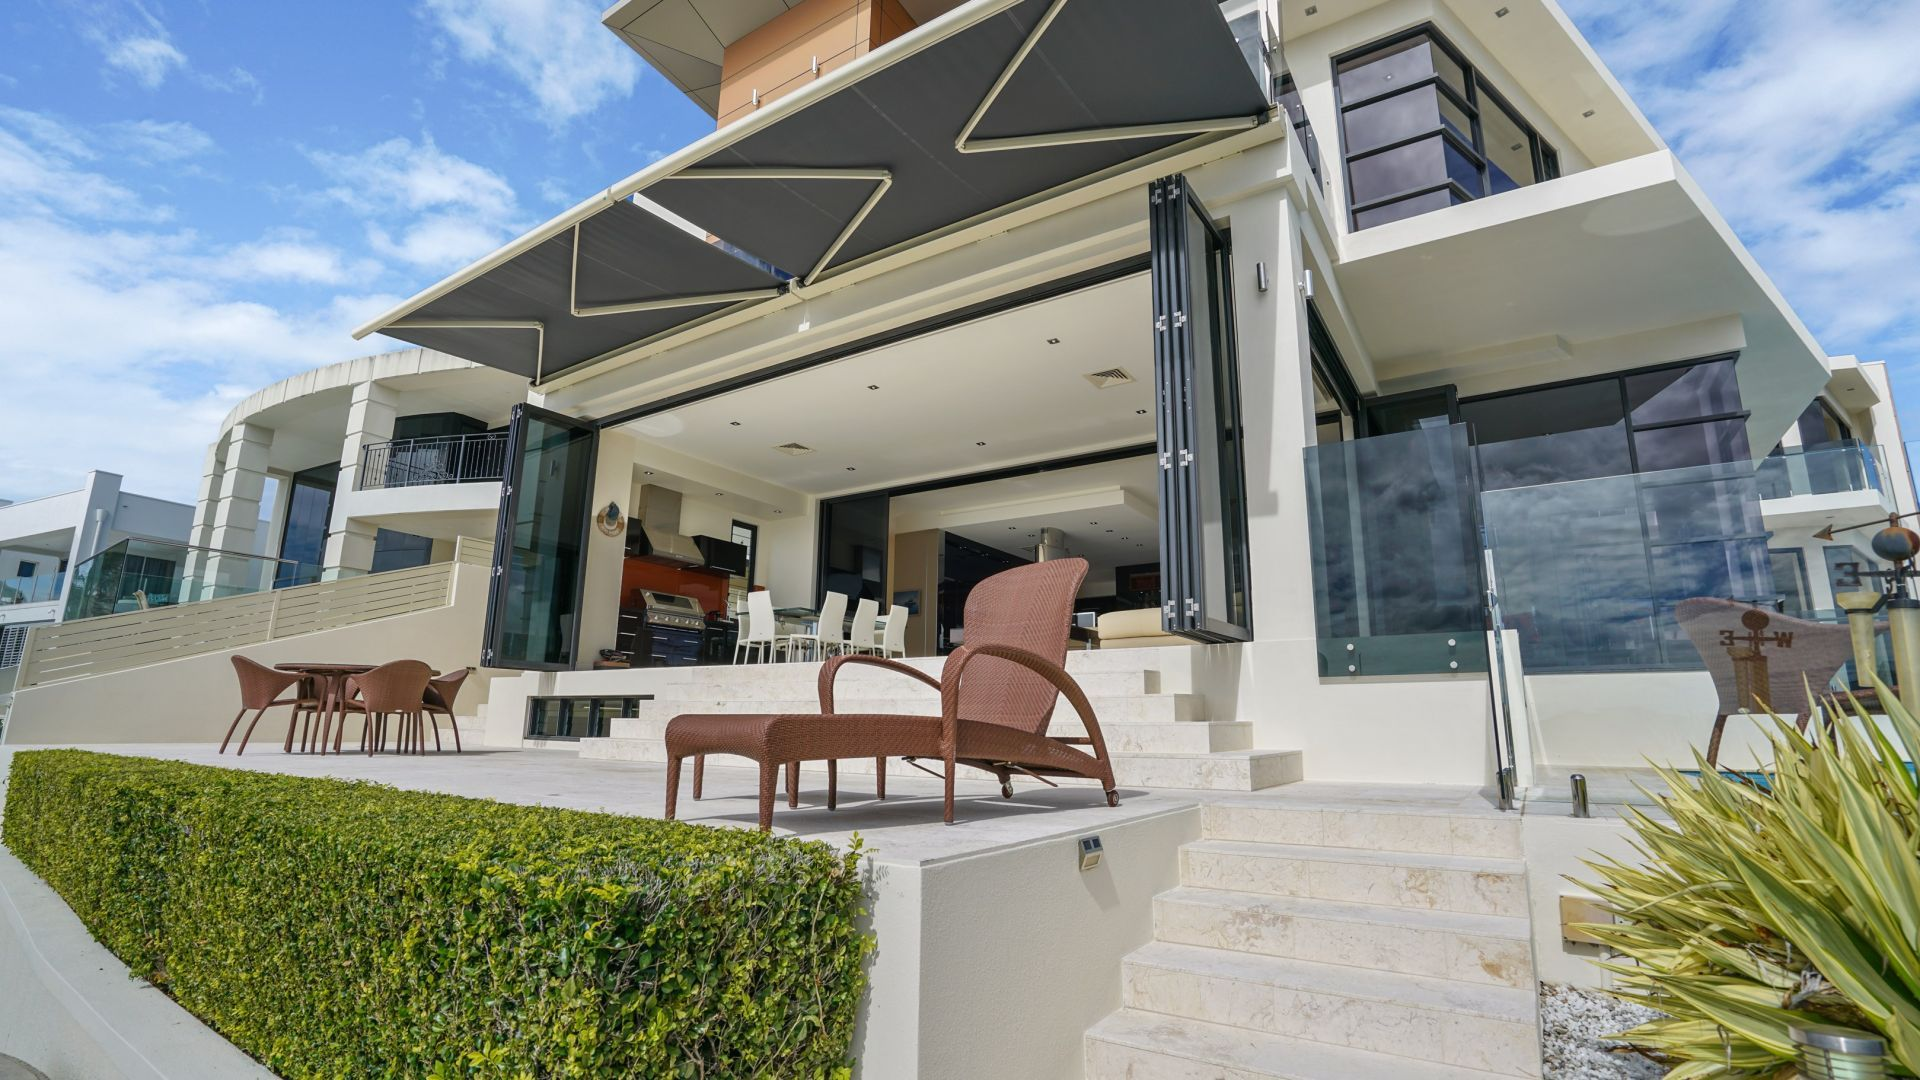 Retractable Awnings by Awning Worx Brisbane and Gold Coast ...